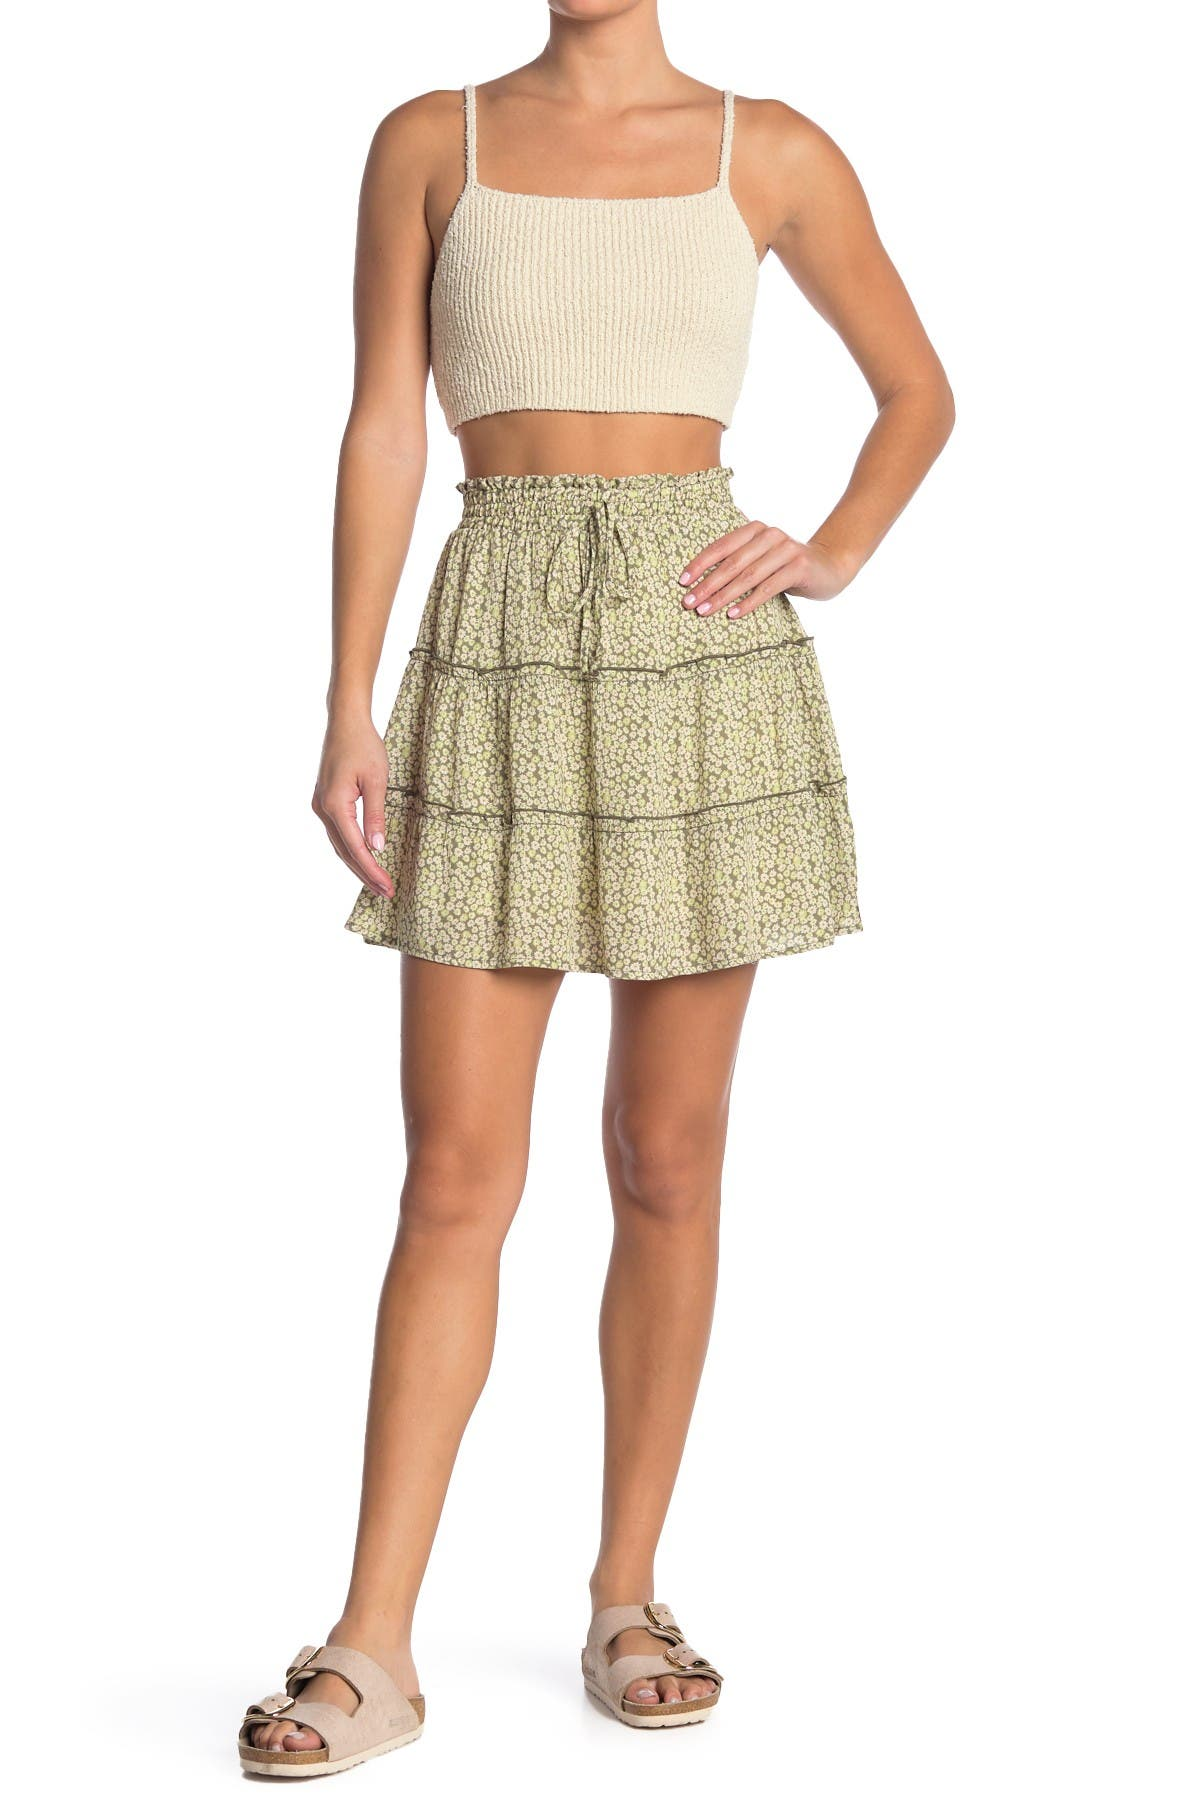 Image of GOOD LUCK GEM Floral Tiered Skirt